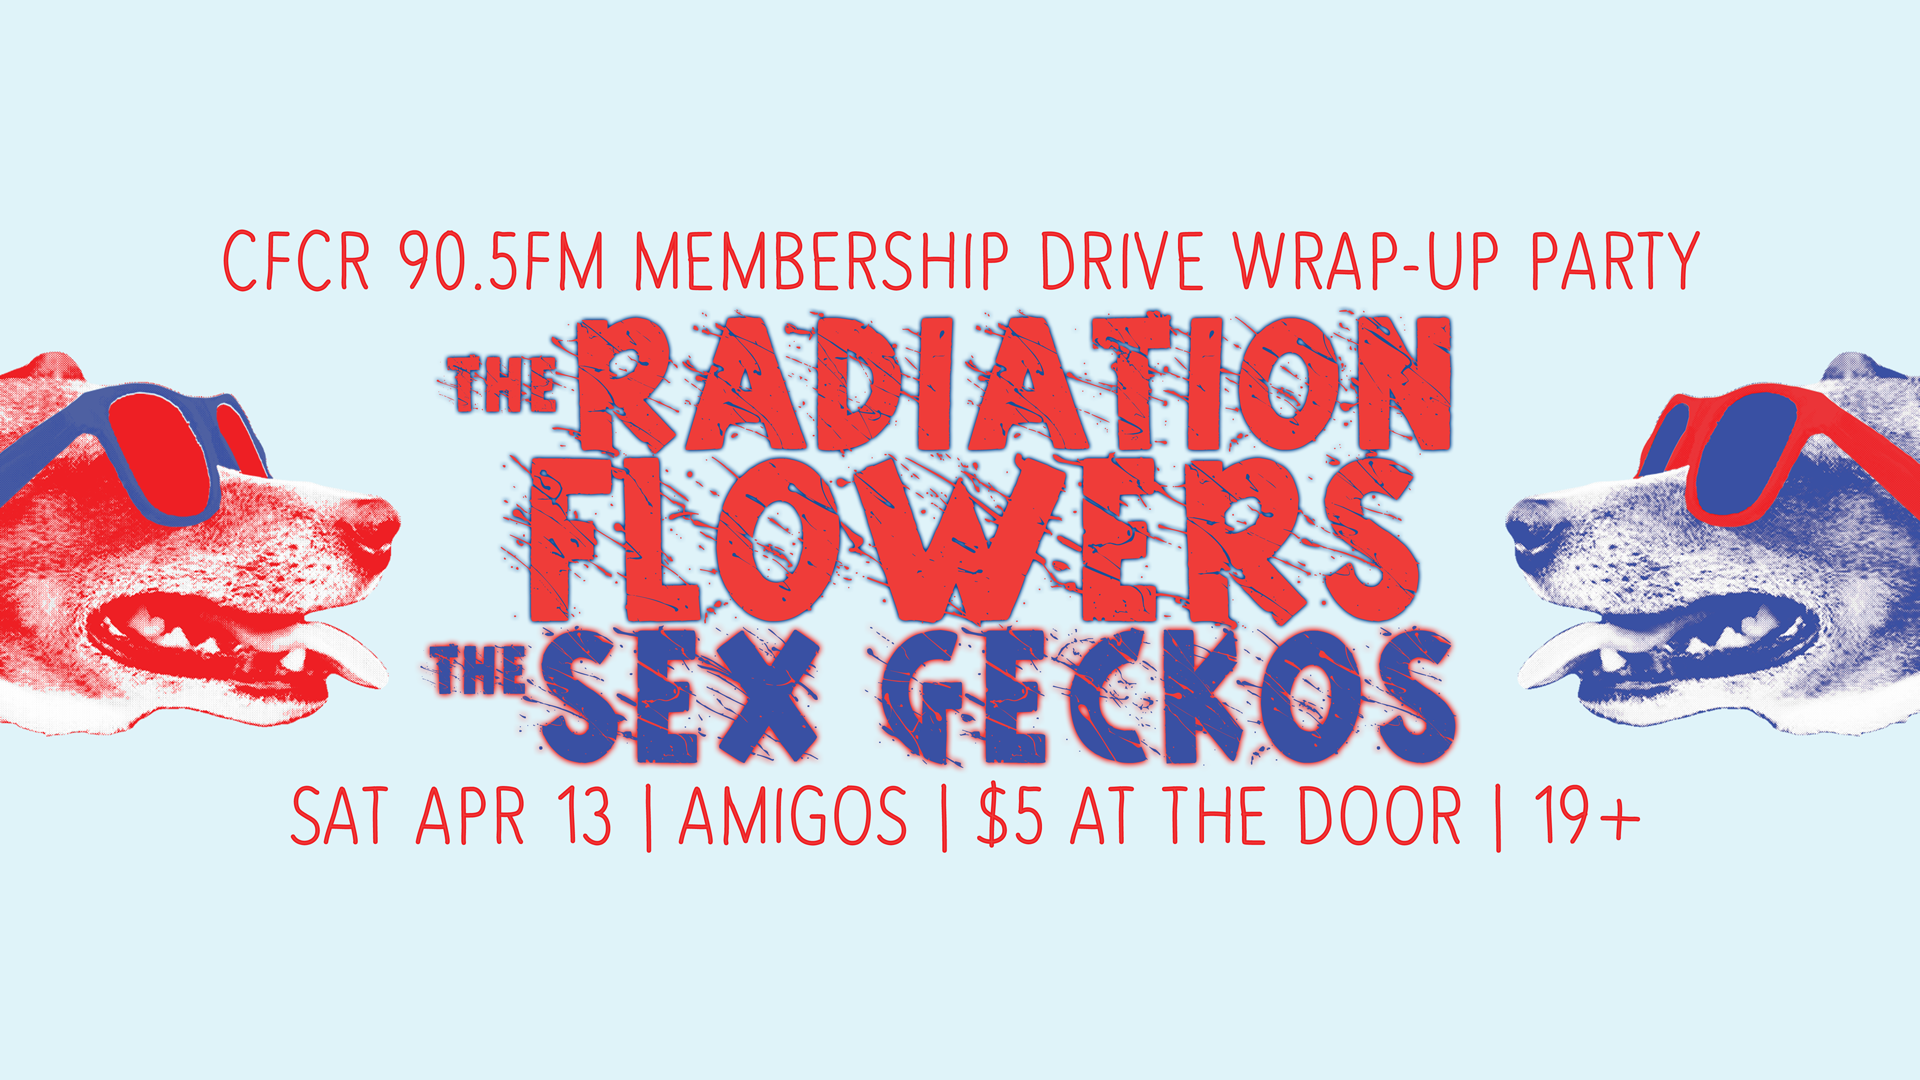 CFCR Membership Drive Wrap-Up: The Radiation Flowers w/ The Sex Geckos